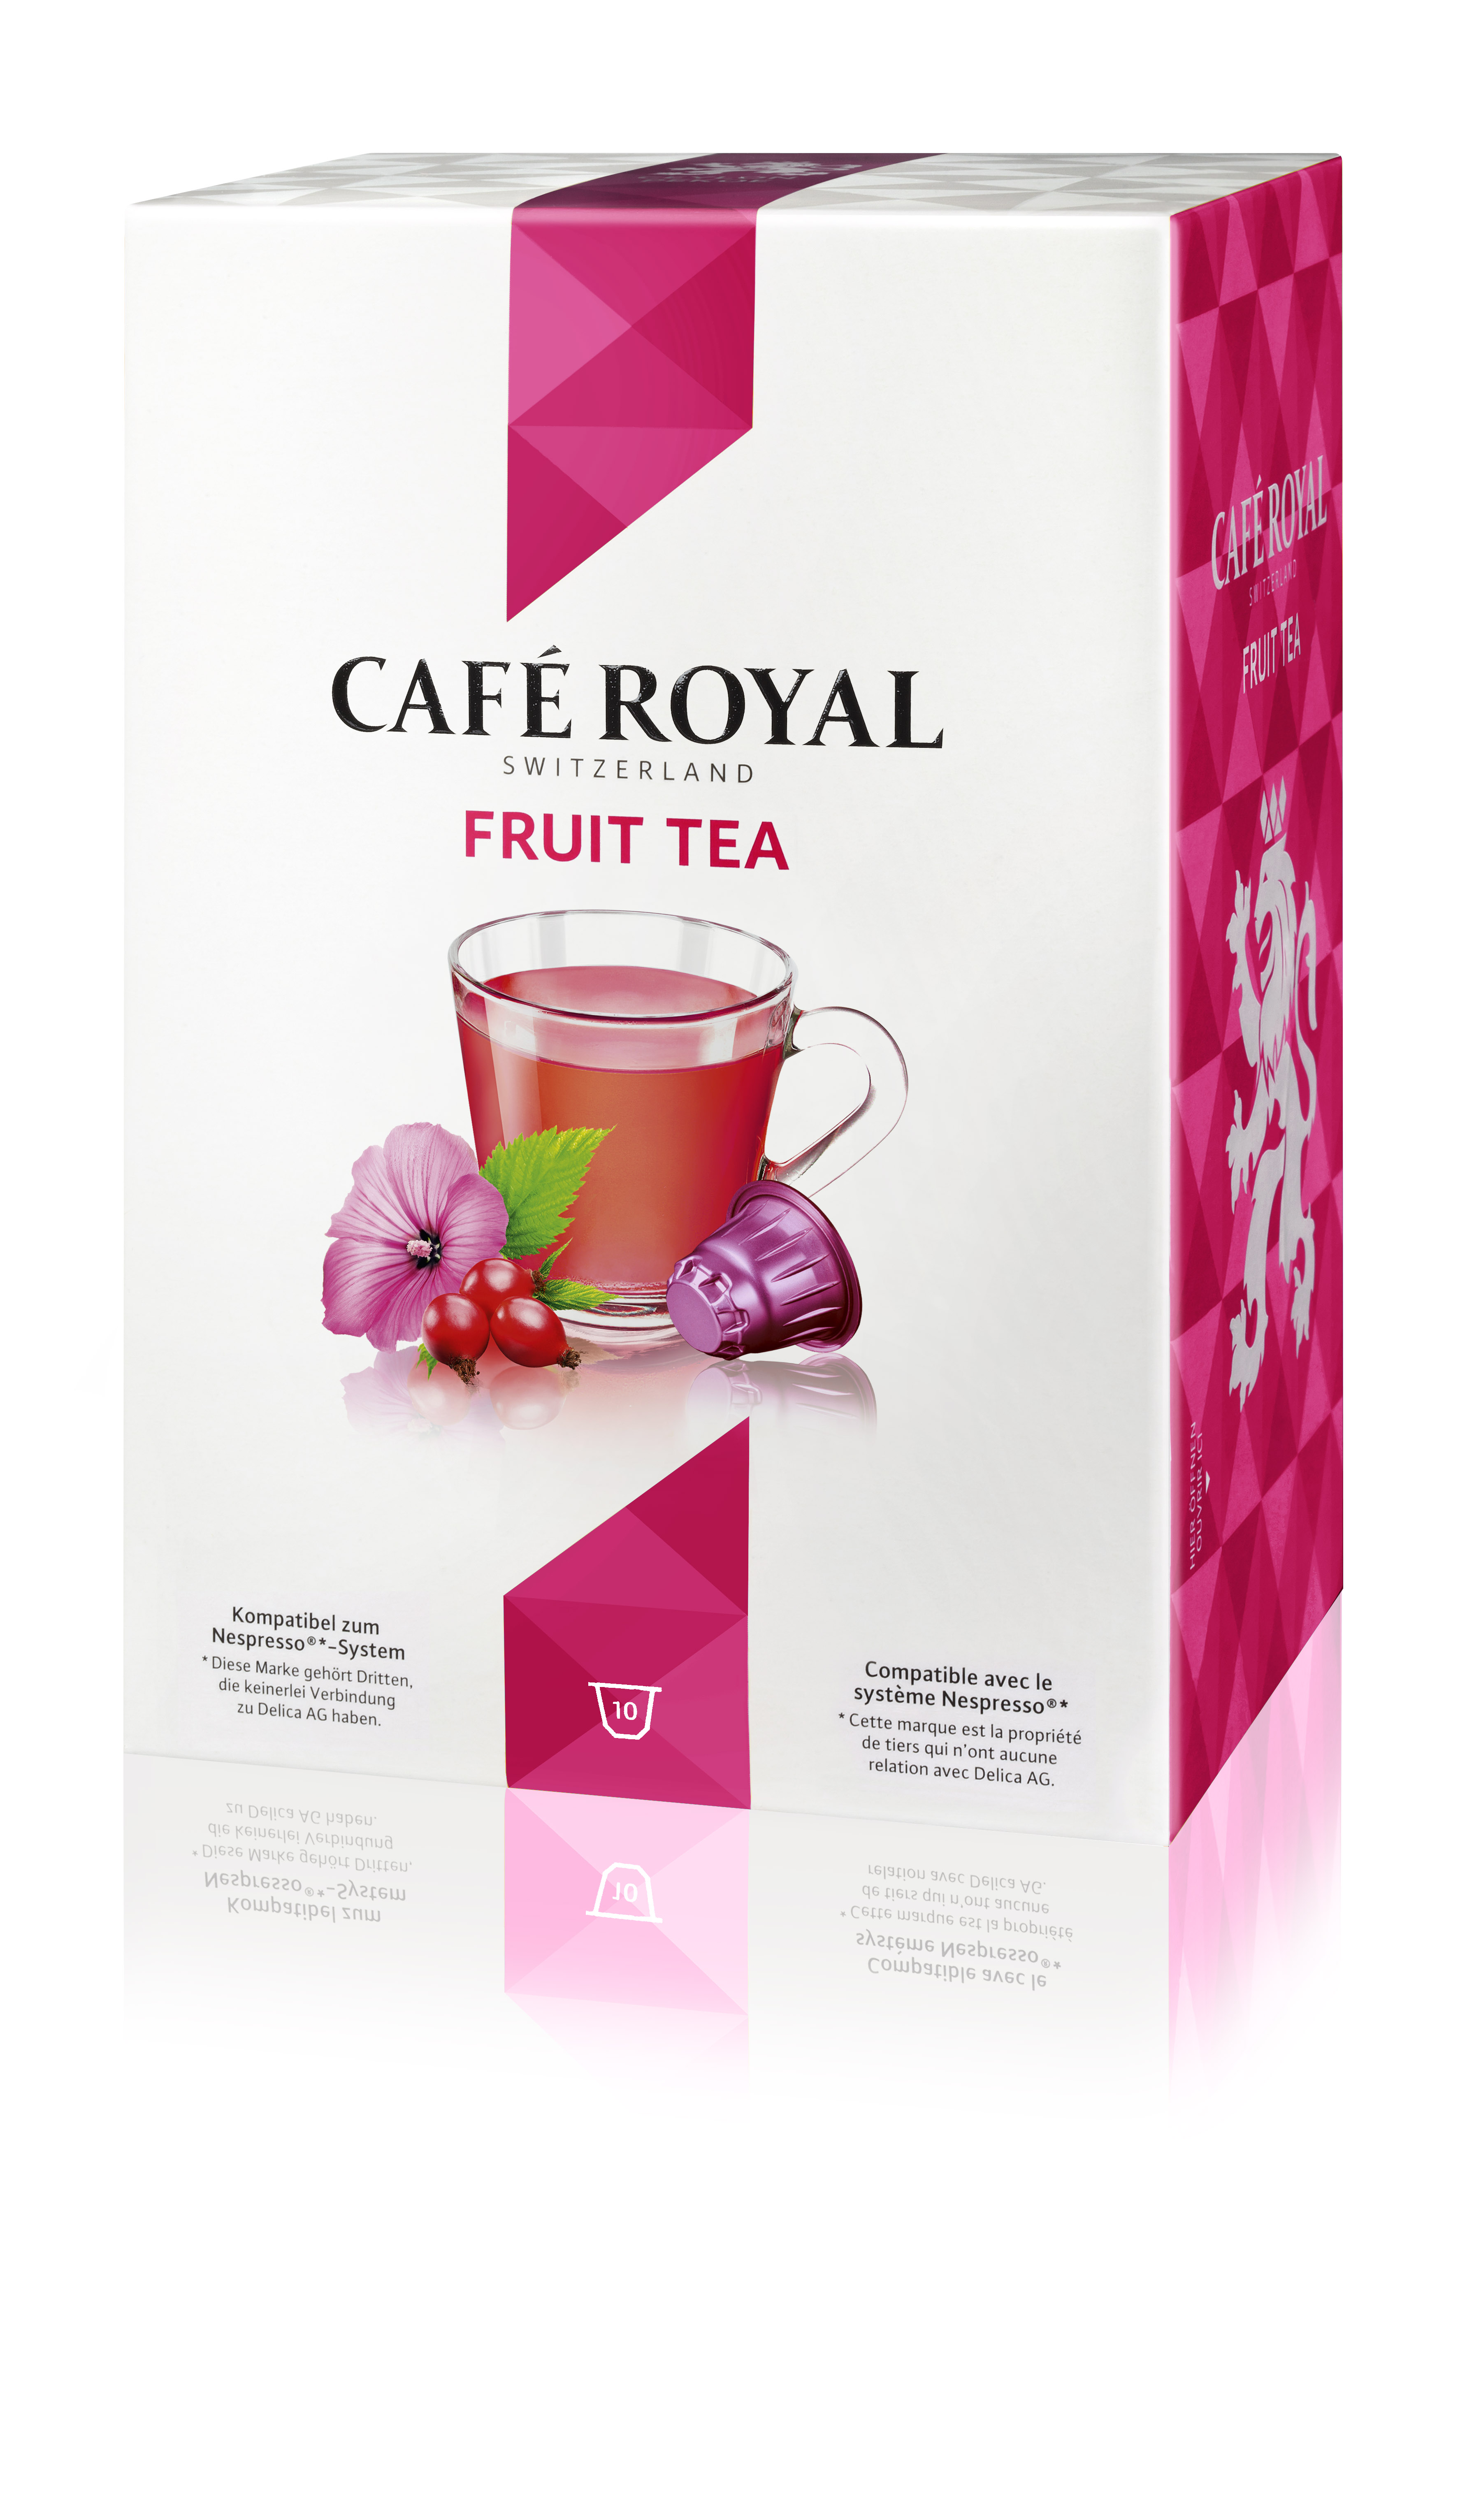 Капсулы для кофемашин Nespresso® Cafe Royal Fruit Tea